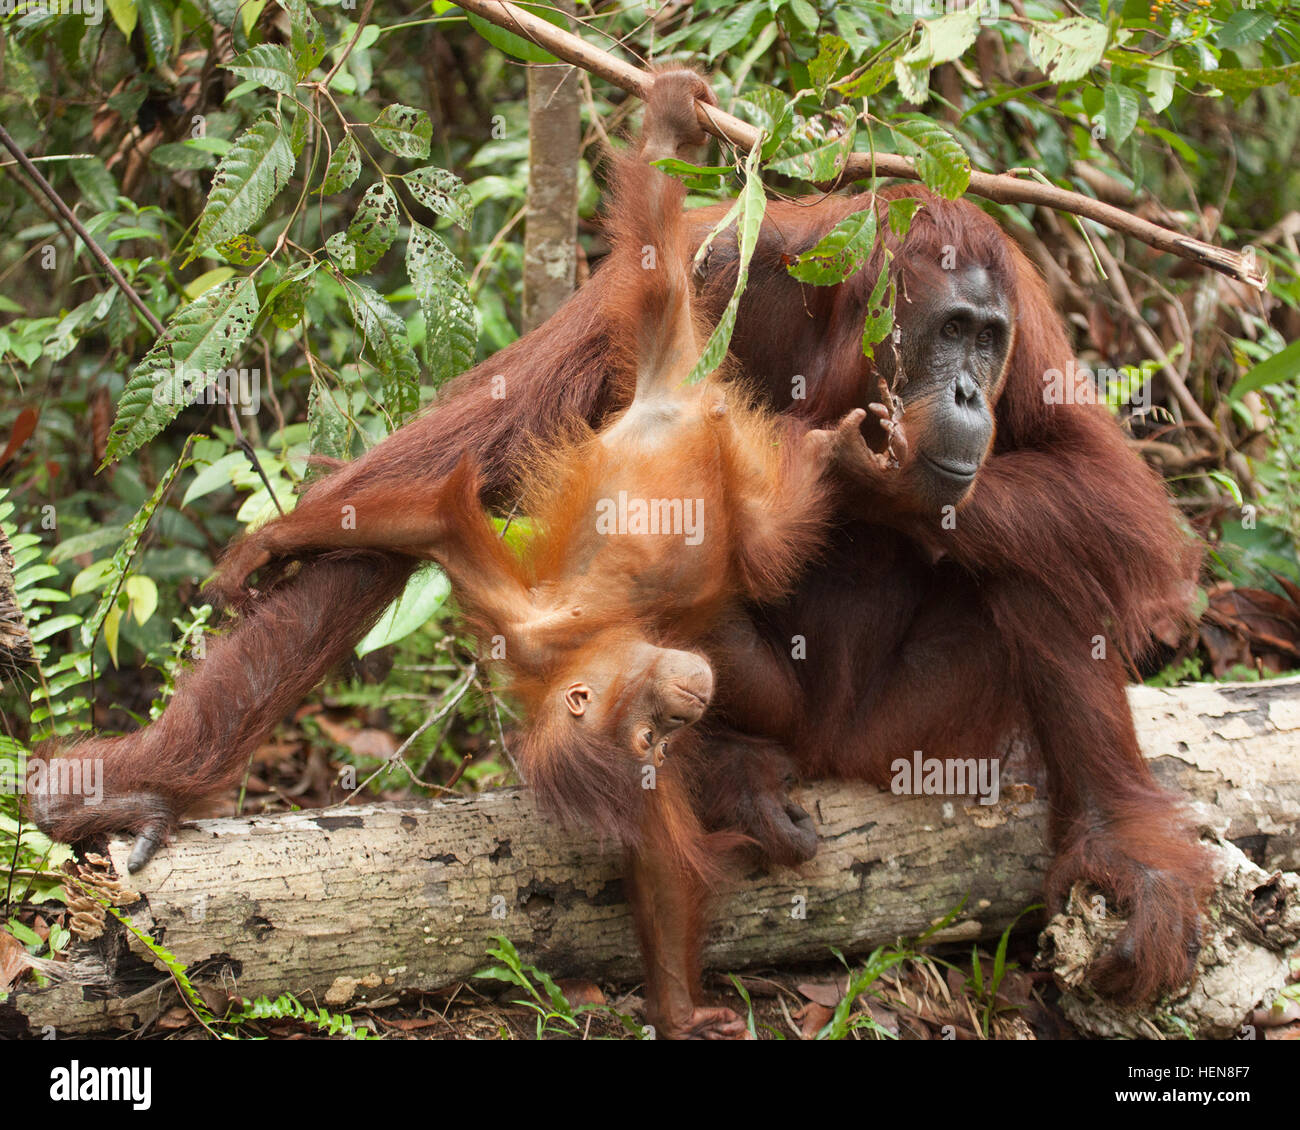 Wild Bornean Orangutan (Pongo pygmaeus) baby hanging from tree branch and playing with mother - Stock Image